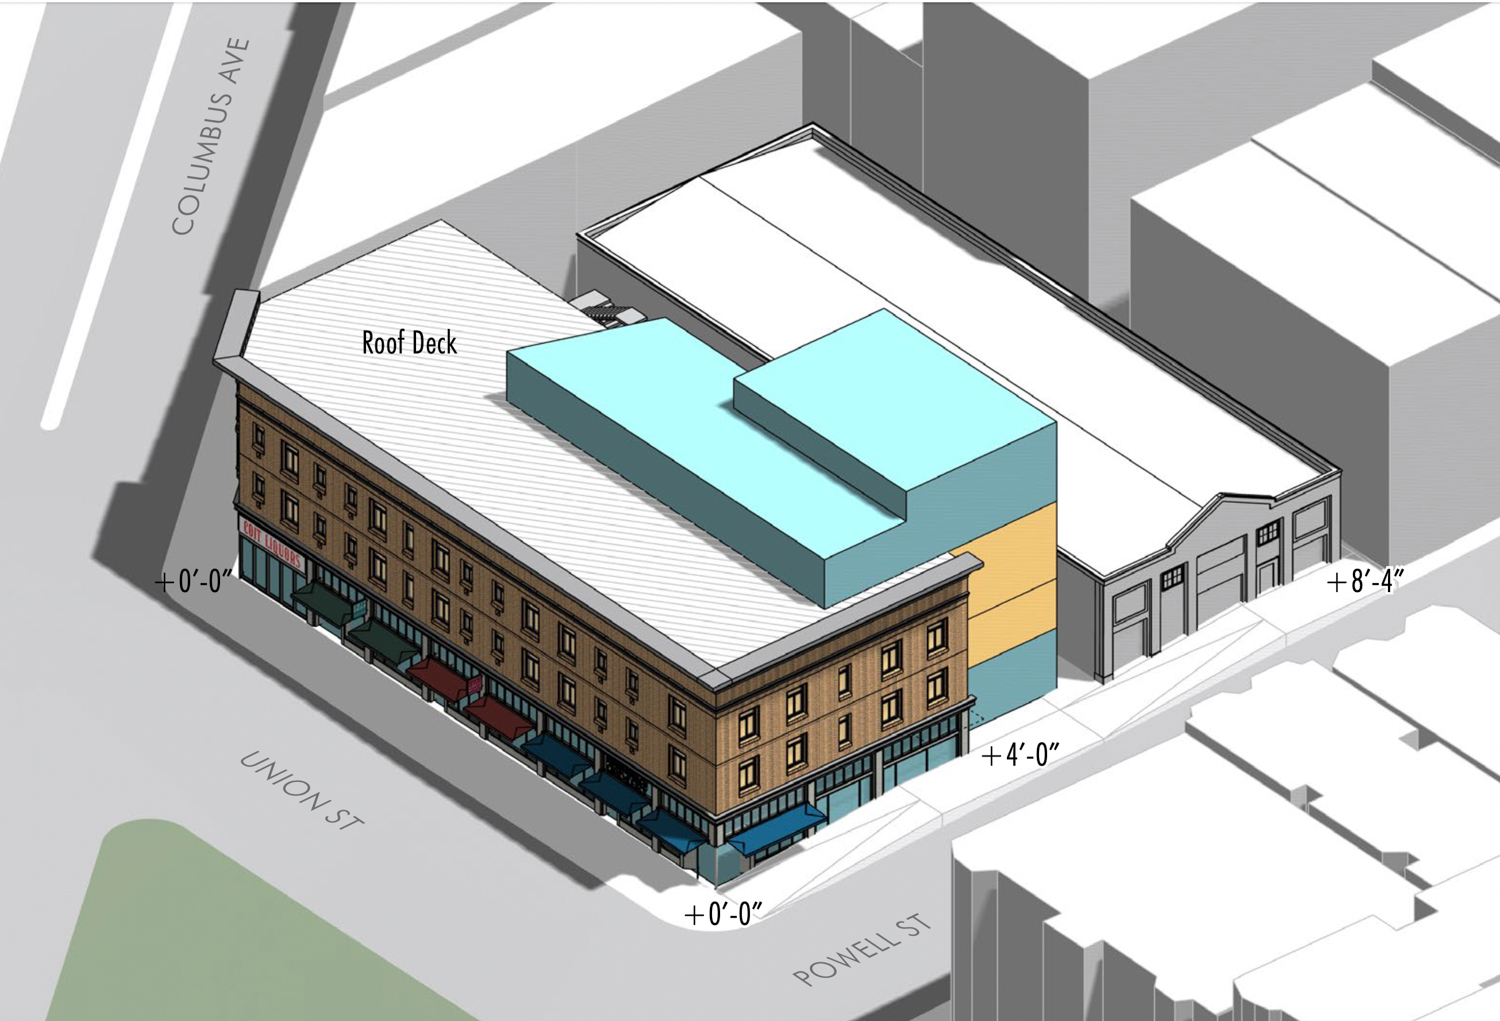 659 Union Street updated massing, rendering by Gould Evans